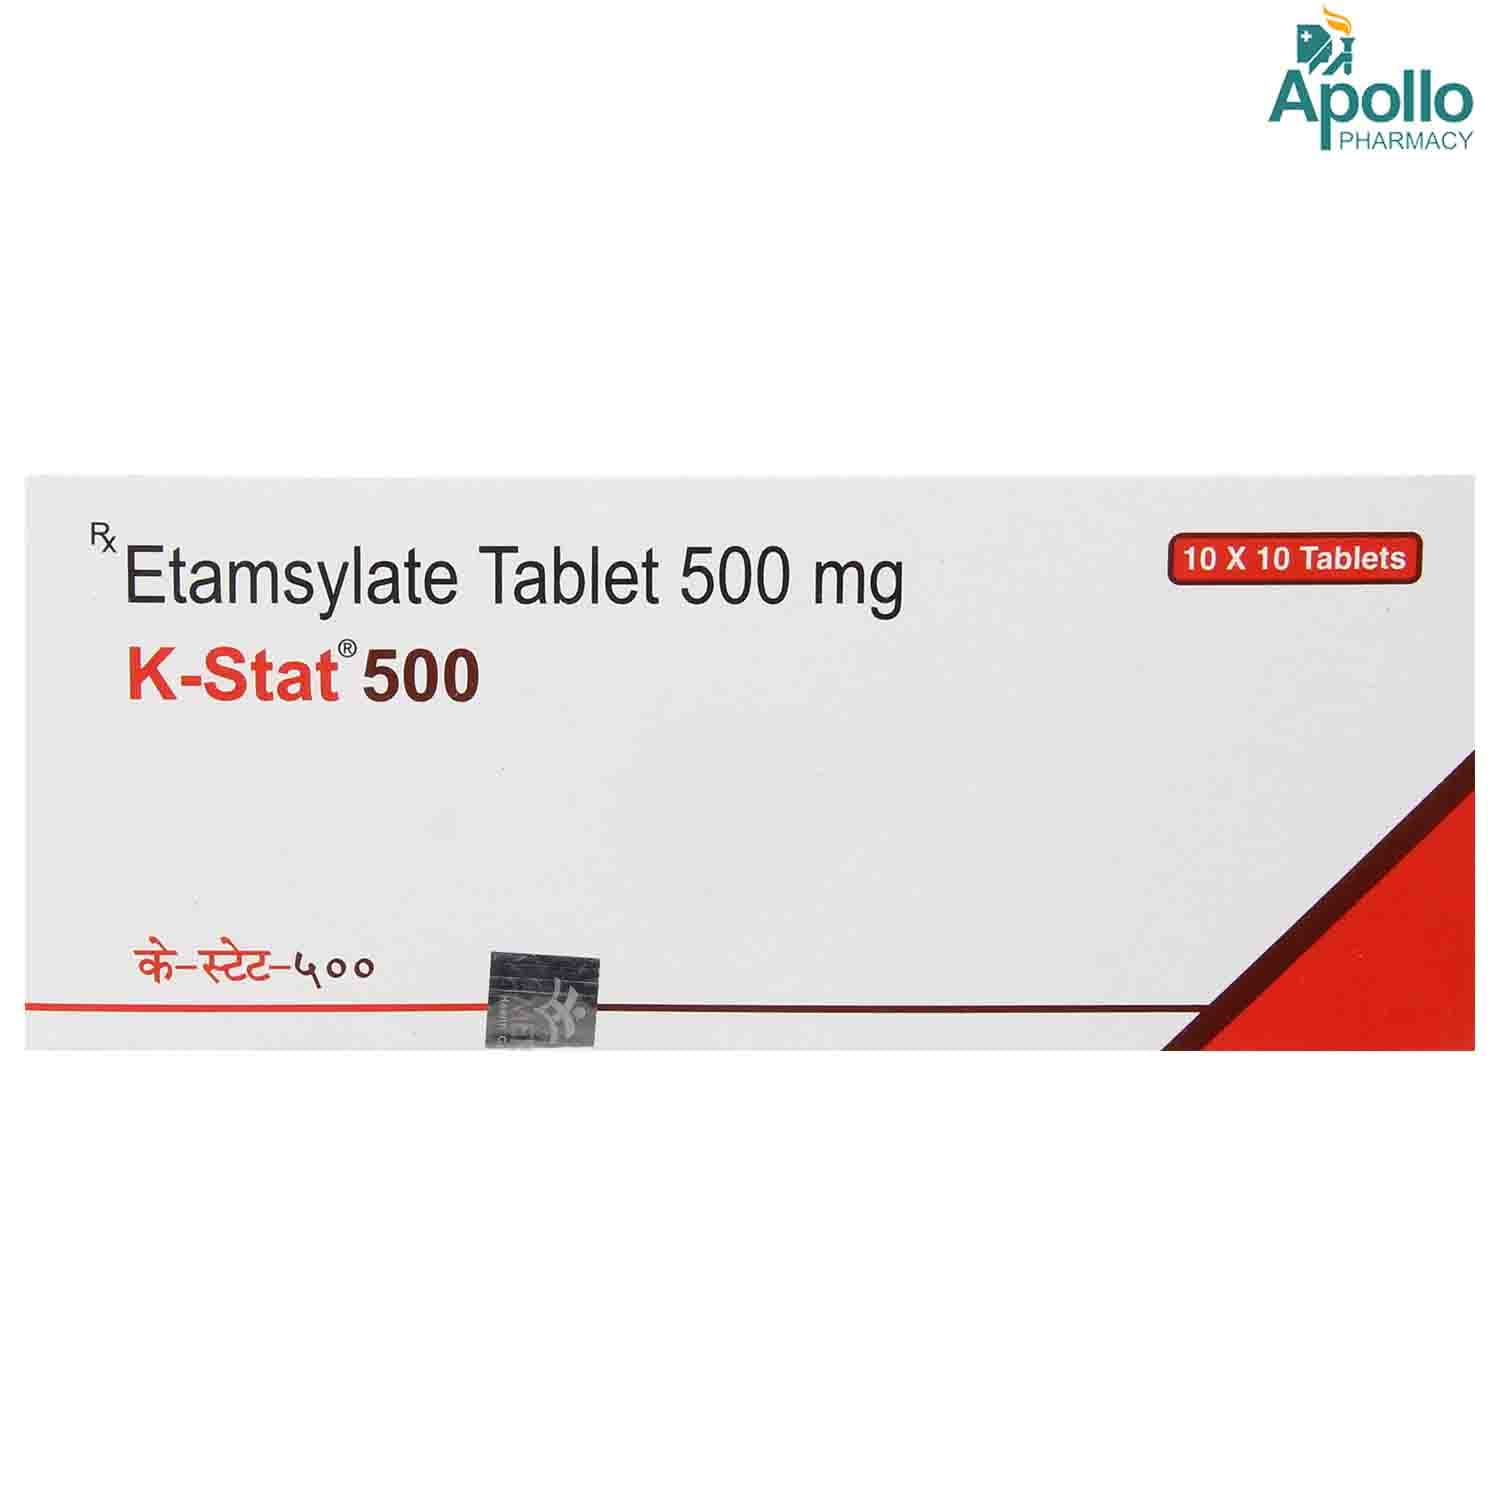 KSTAT 500MG TABLET Price, Uses, Side Effects, Composition - Apollo Pharmacy